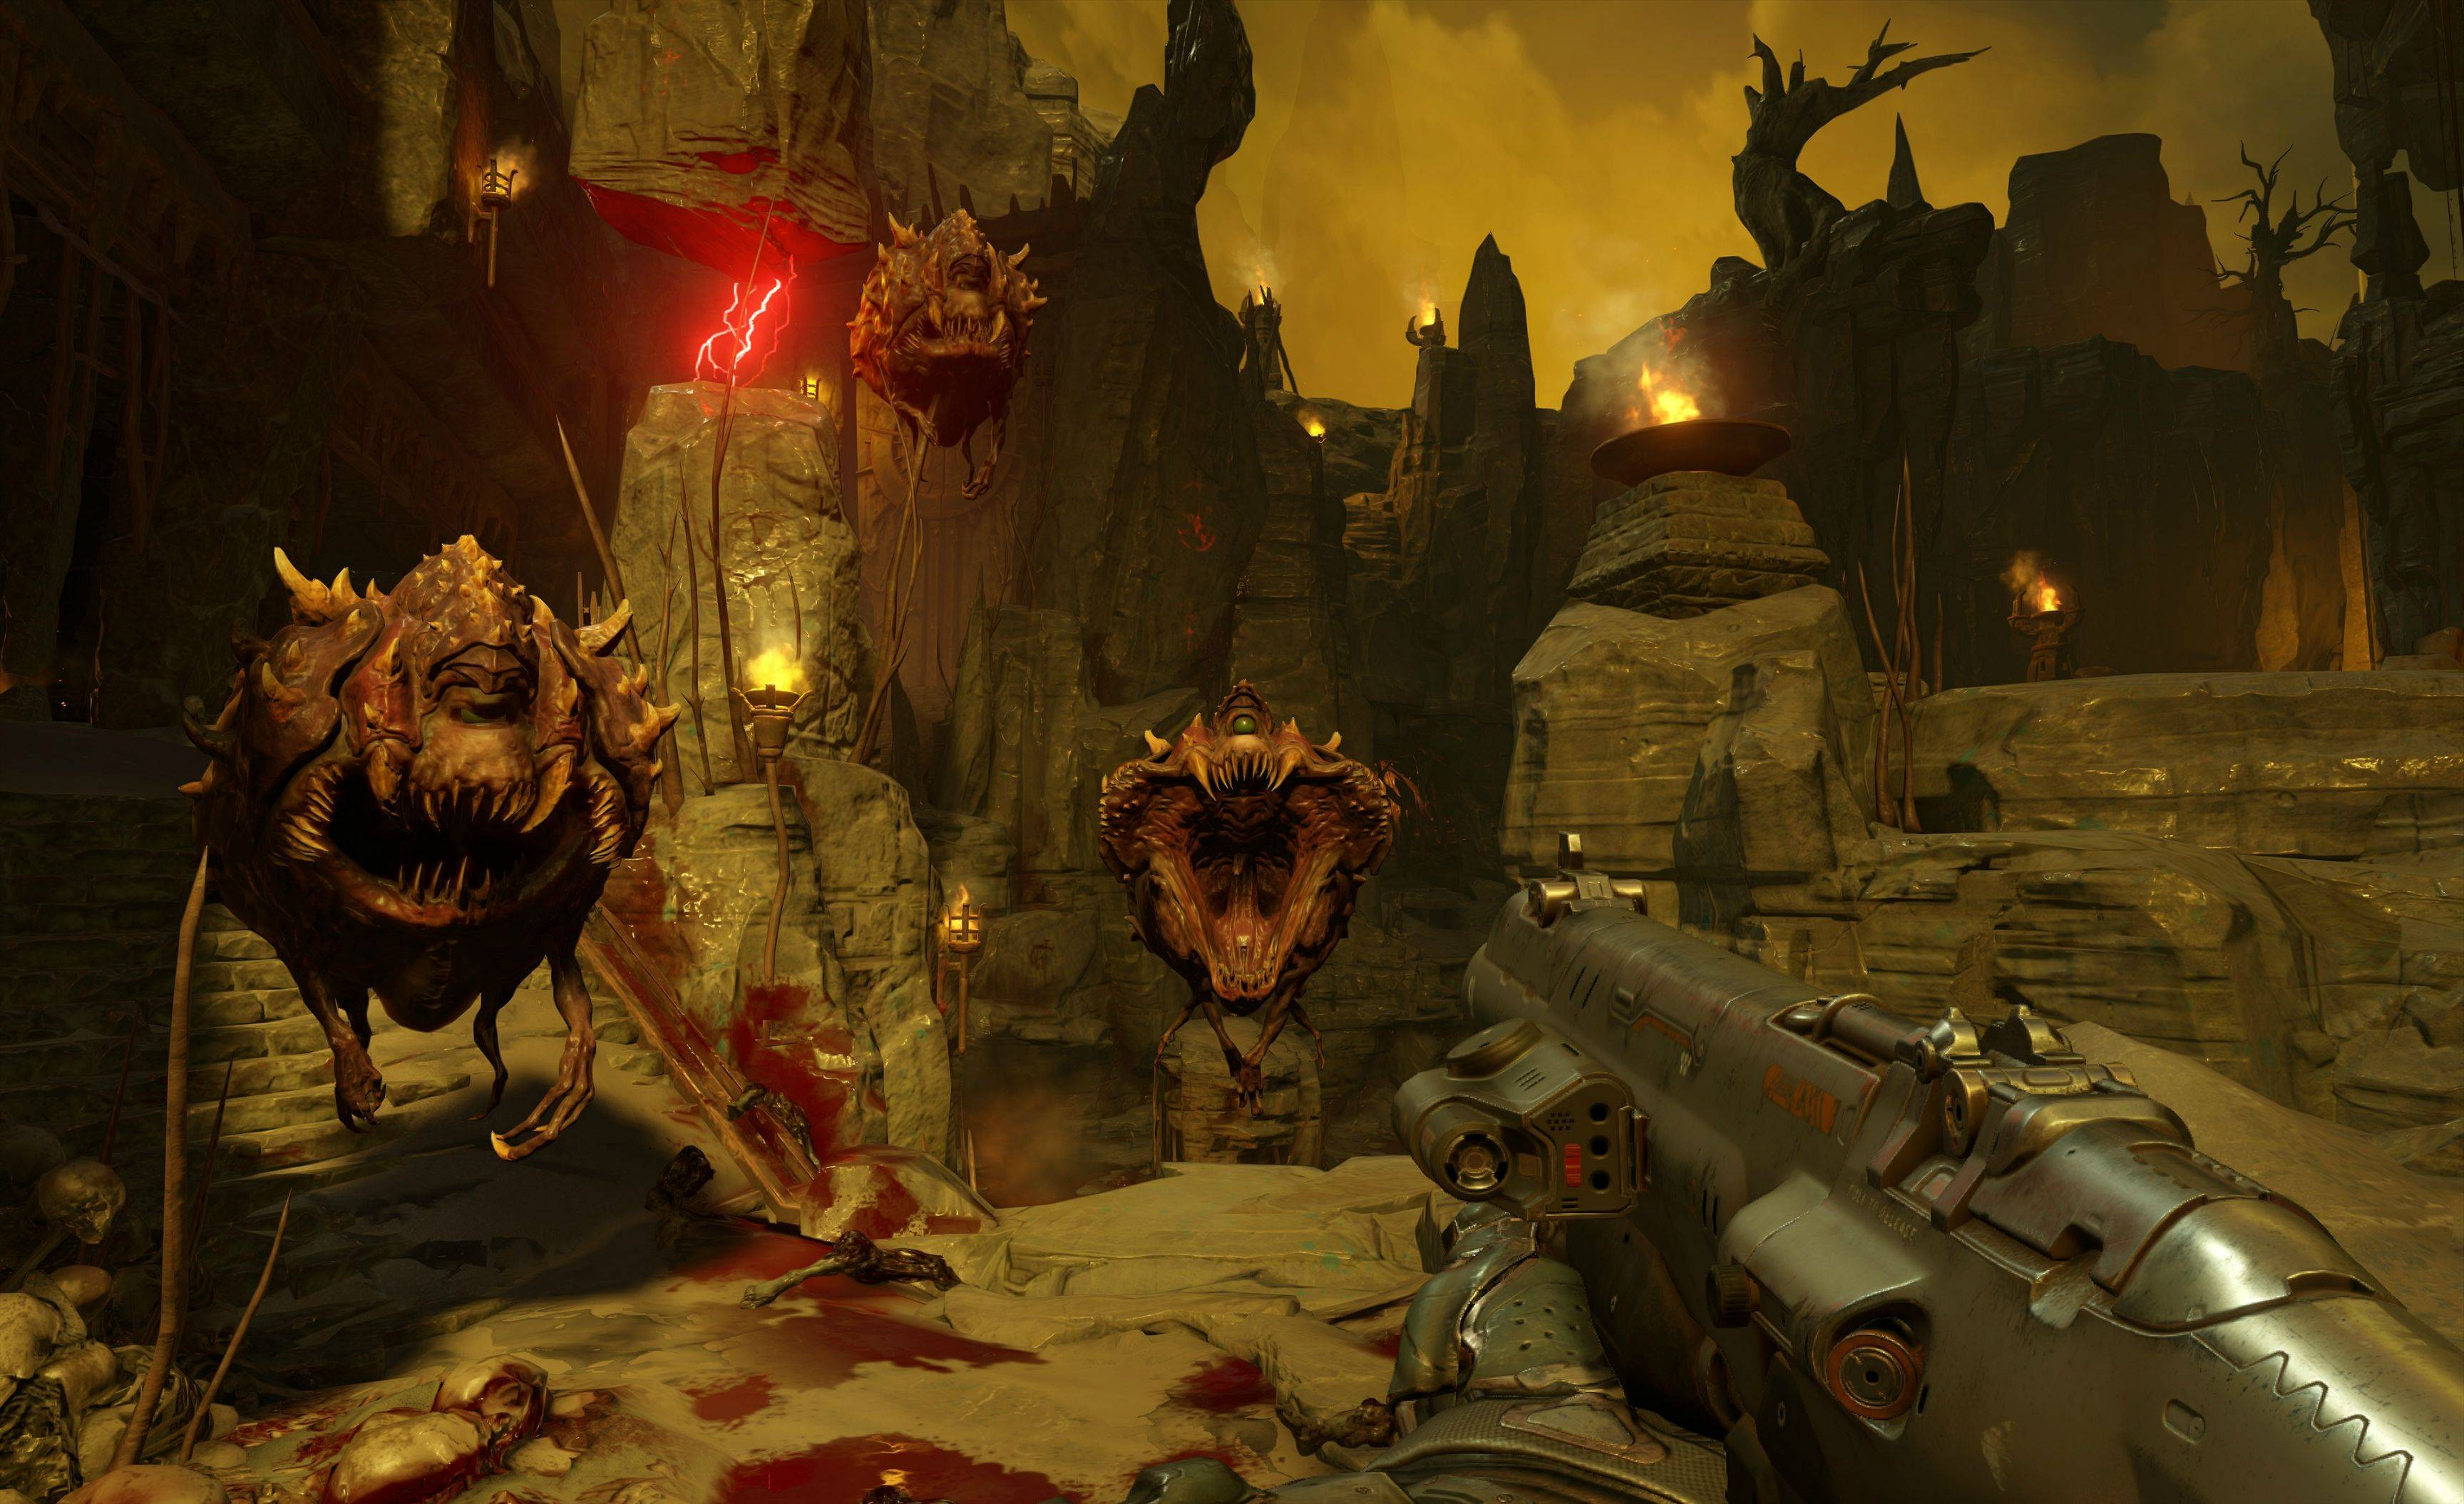 doom_ingame_quakecon